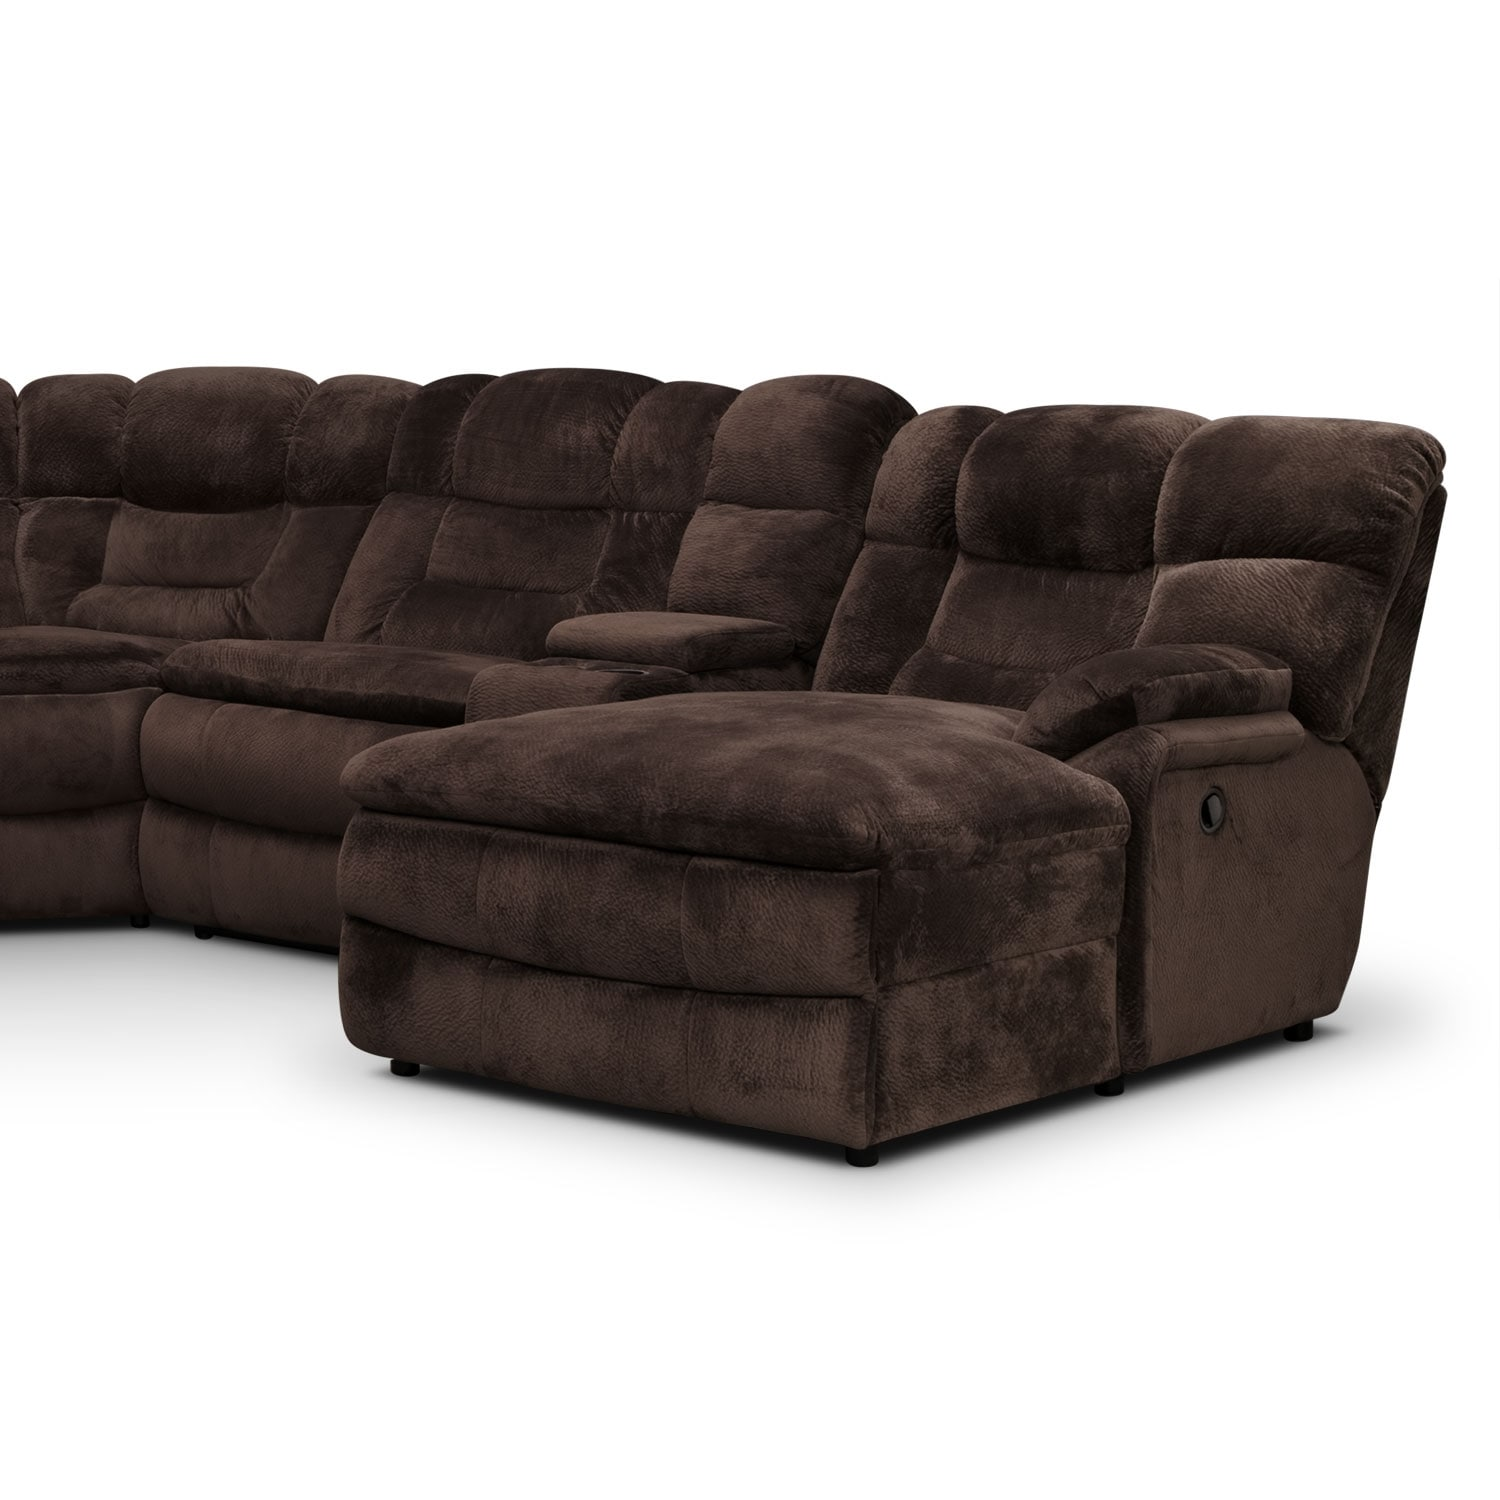 Couch Chaise And Recliner